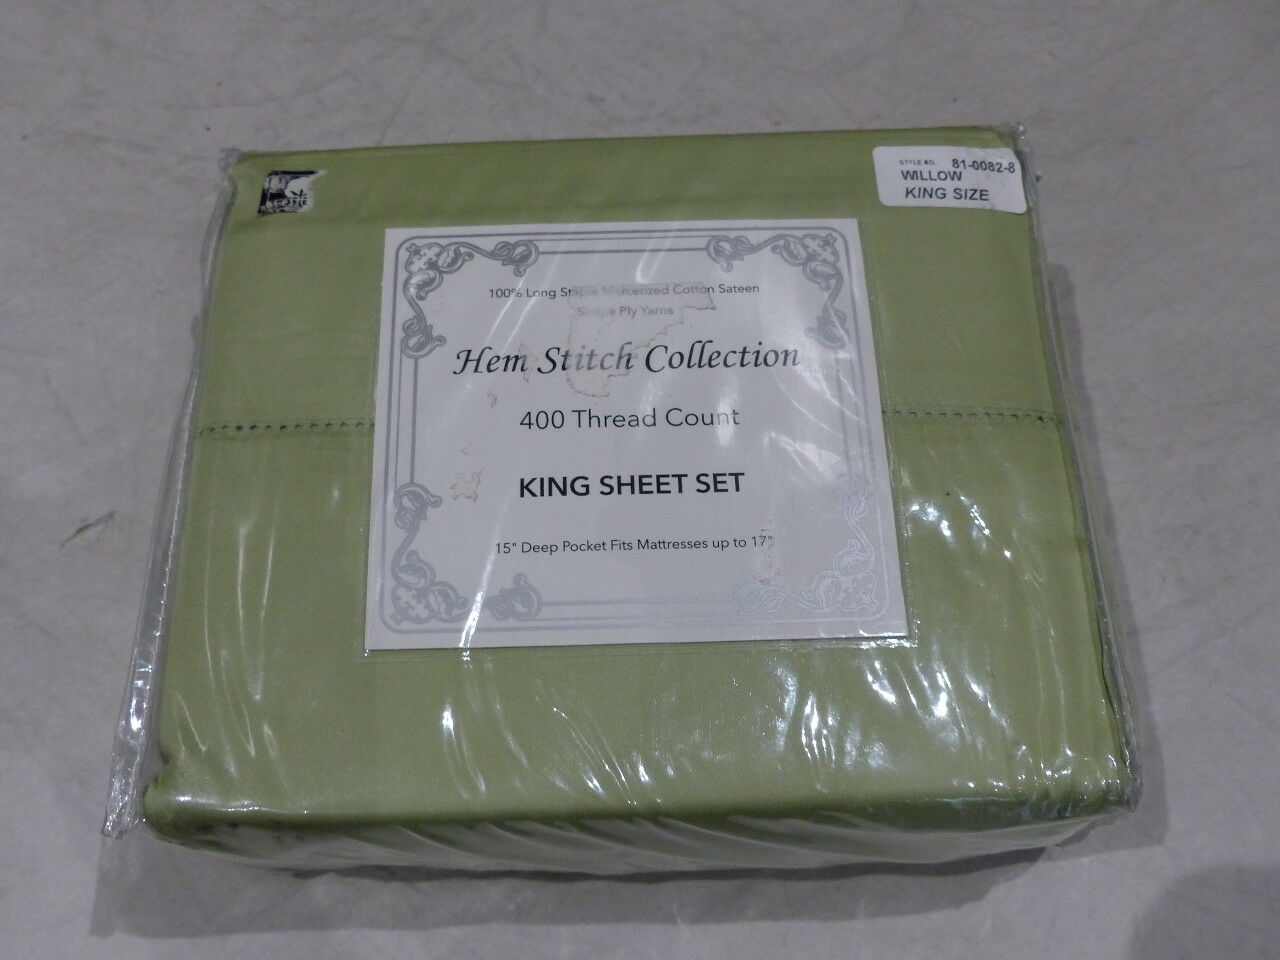 Ourlet Couture Collection 4 Pièce Feuille Set King Vert 98506 81-0082-8